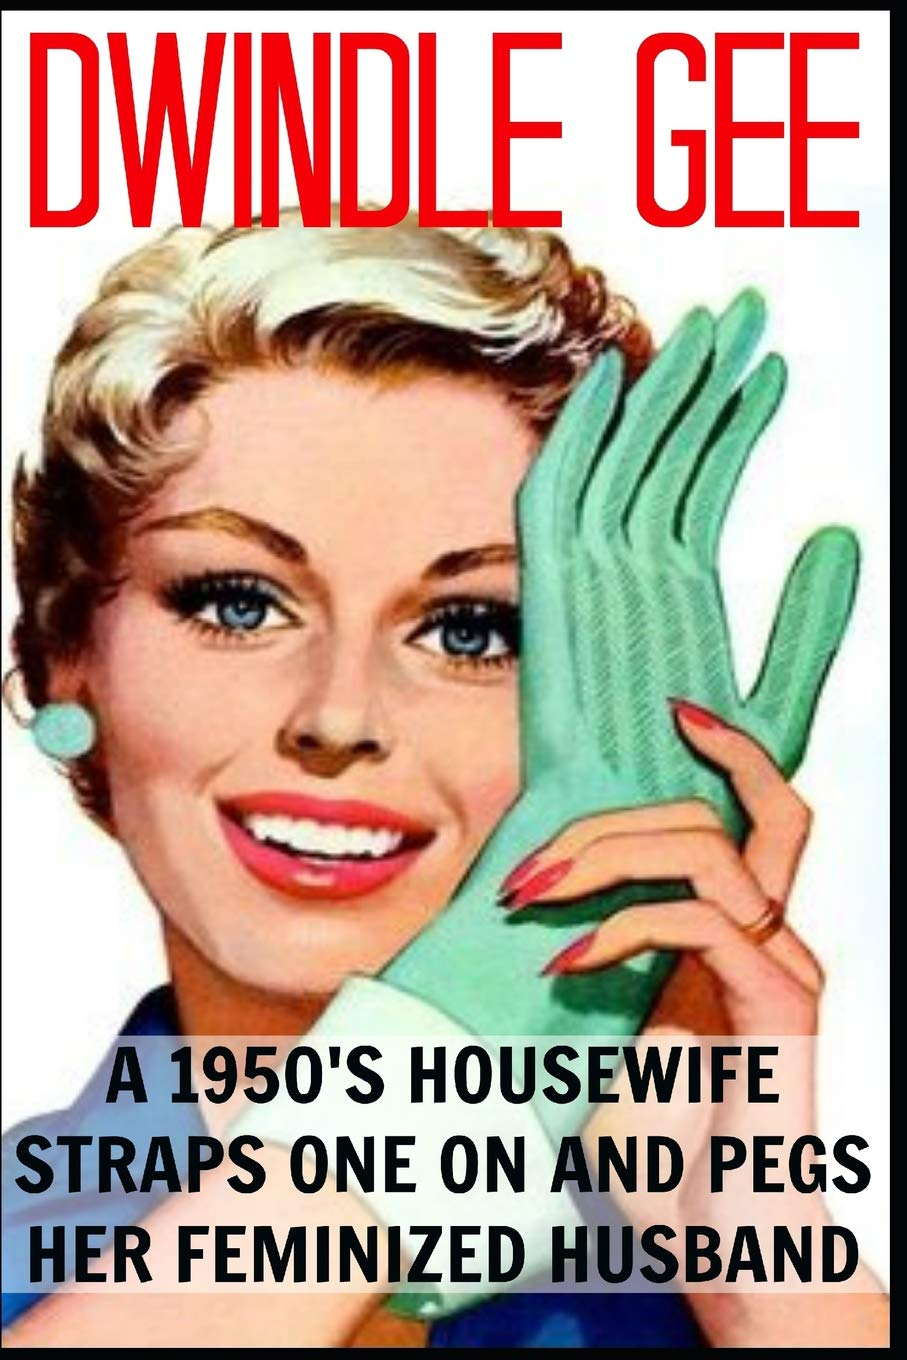 Download A Sexy 1950's Housewife Straps One On And Pegs Her Feminized Husband: An Explicit and Erotic Tale of Forced Sissification and Crossdressing 1950's Style! pdf epub